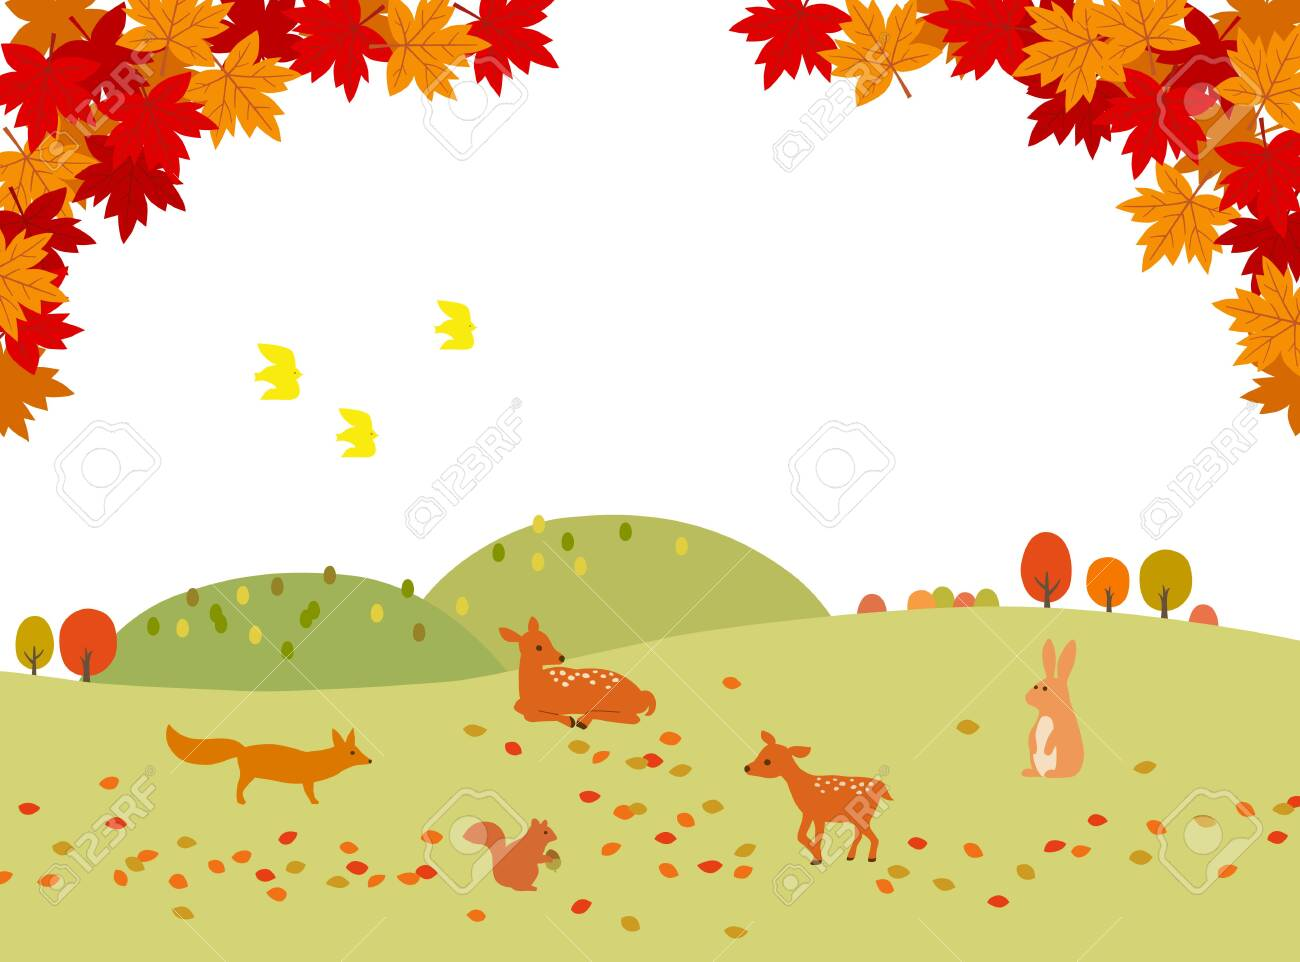 Autumn leaves and animals landscape background material - 155275535